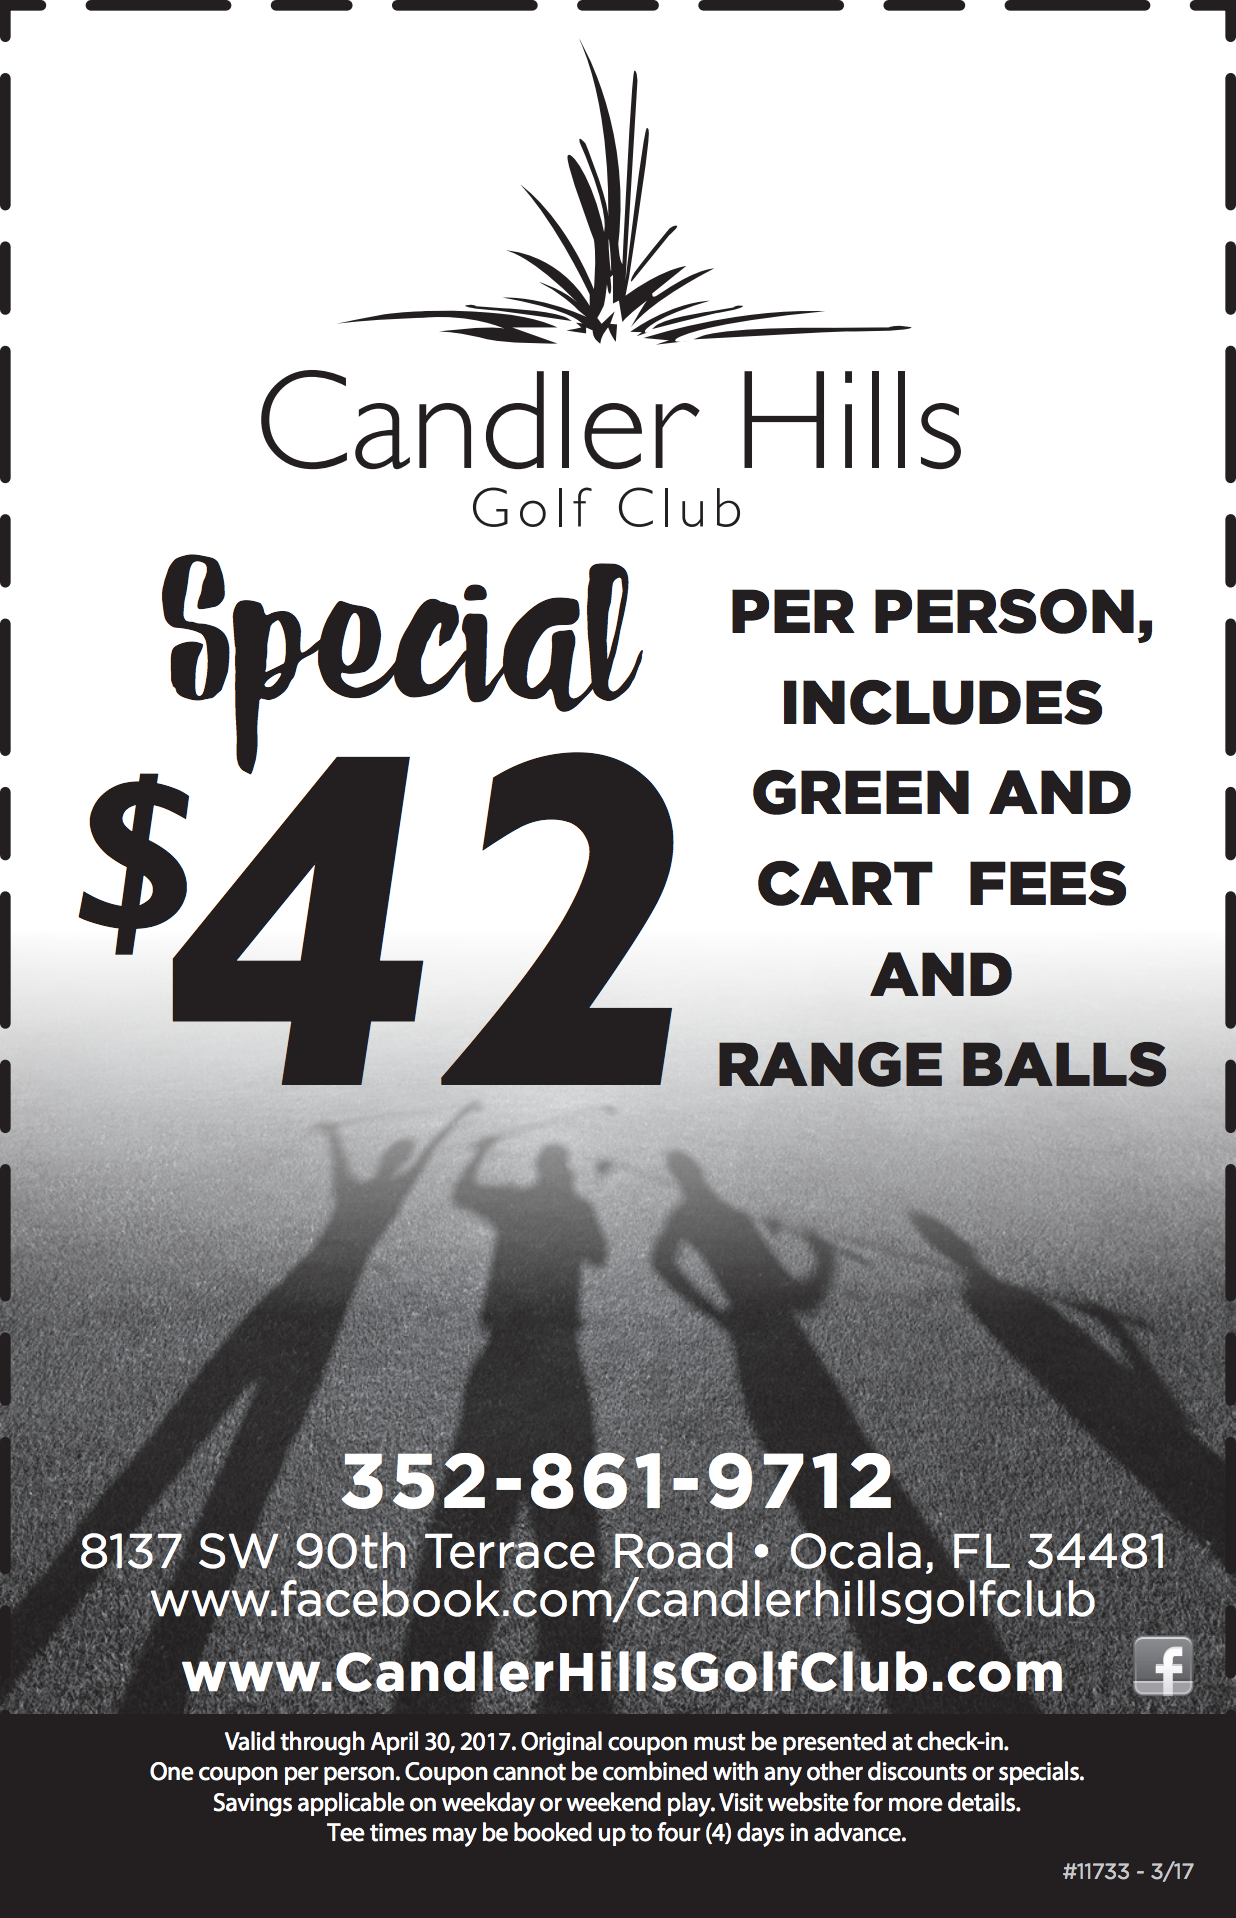 April 2017 coupon for Candler Hills Golf Club.